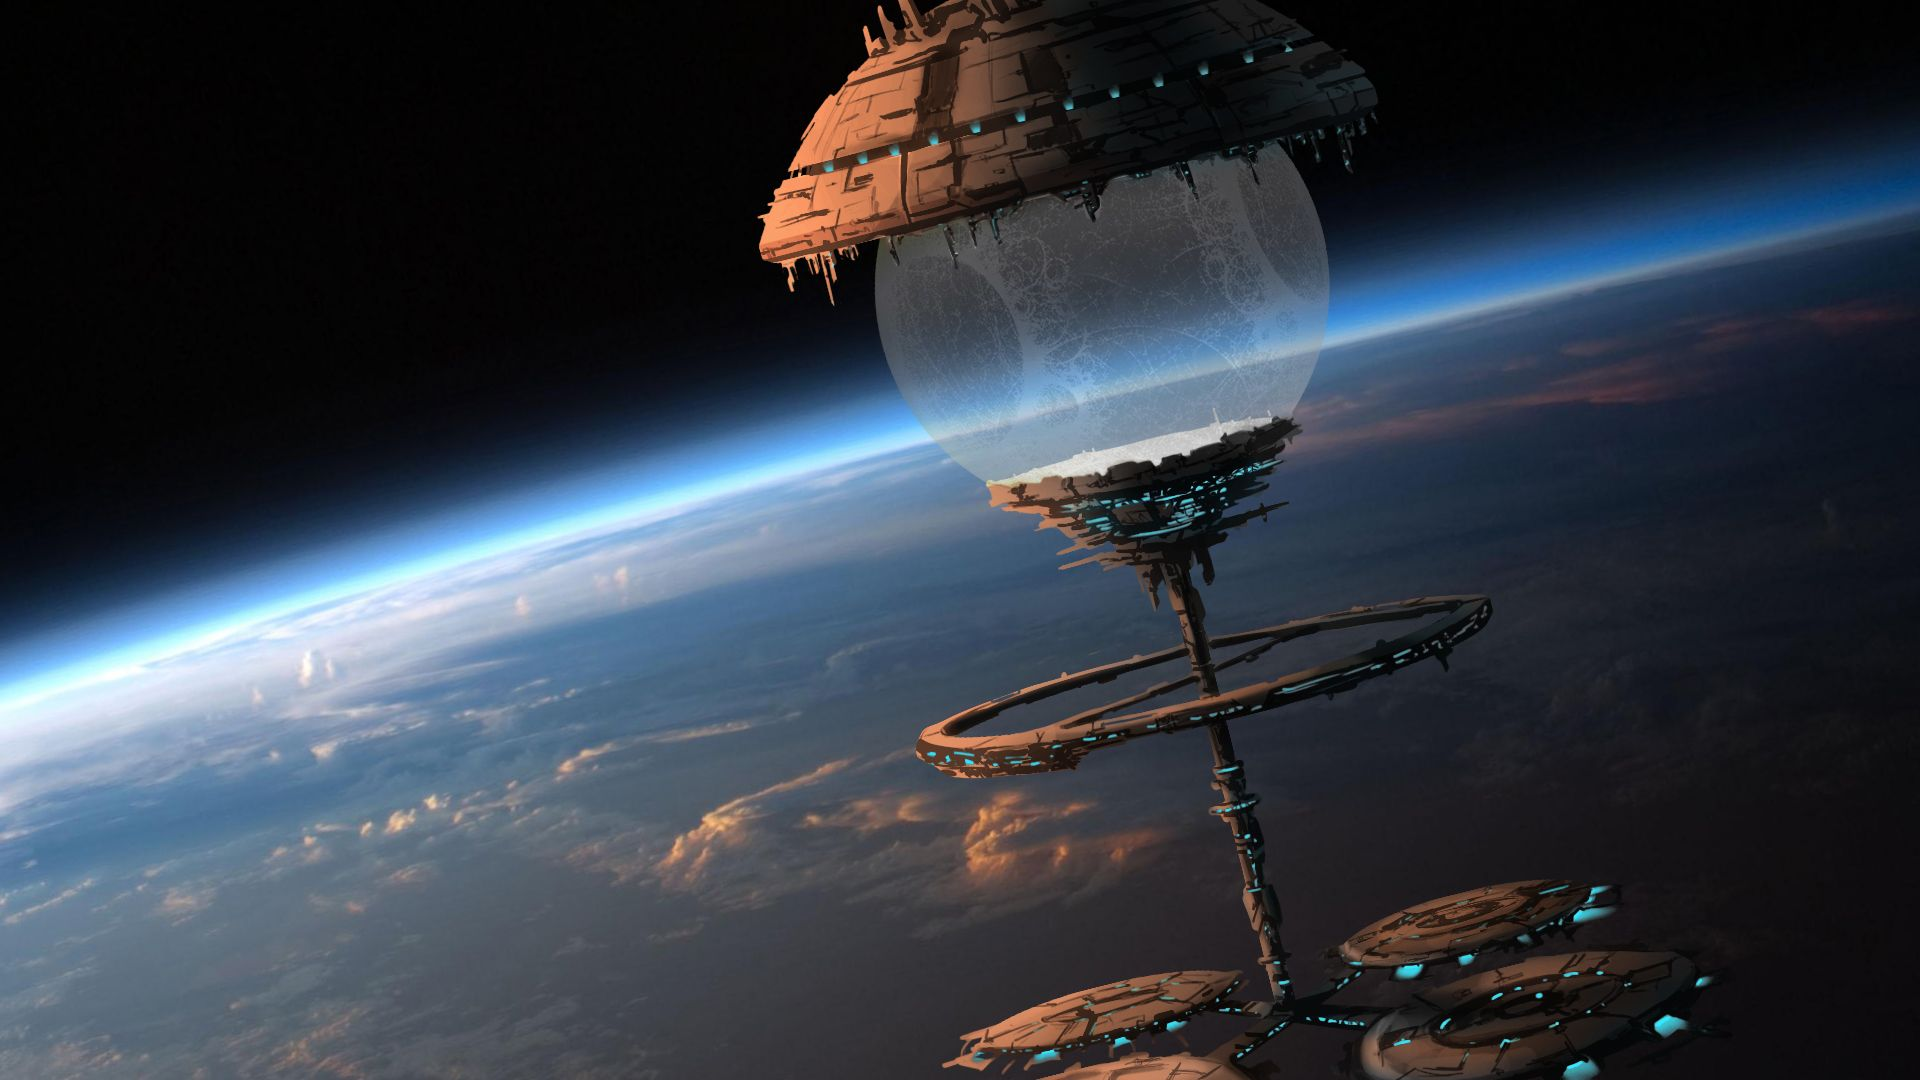 prison sci fi space station - photo #29